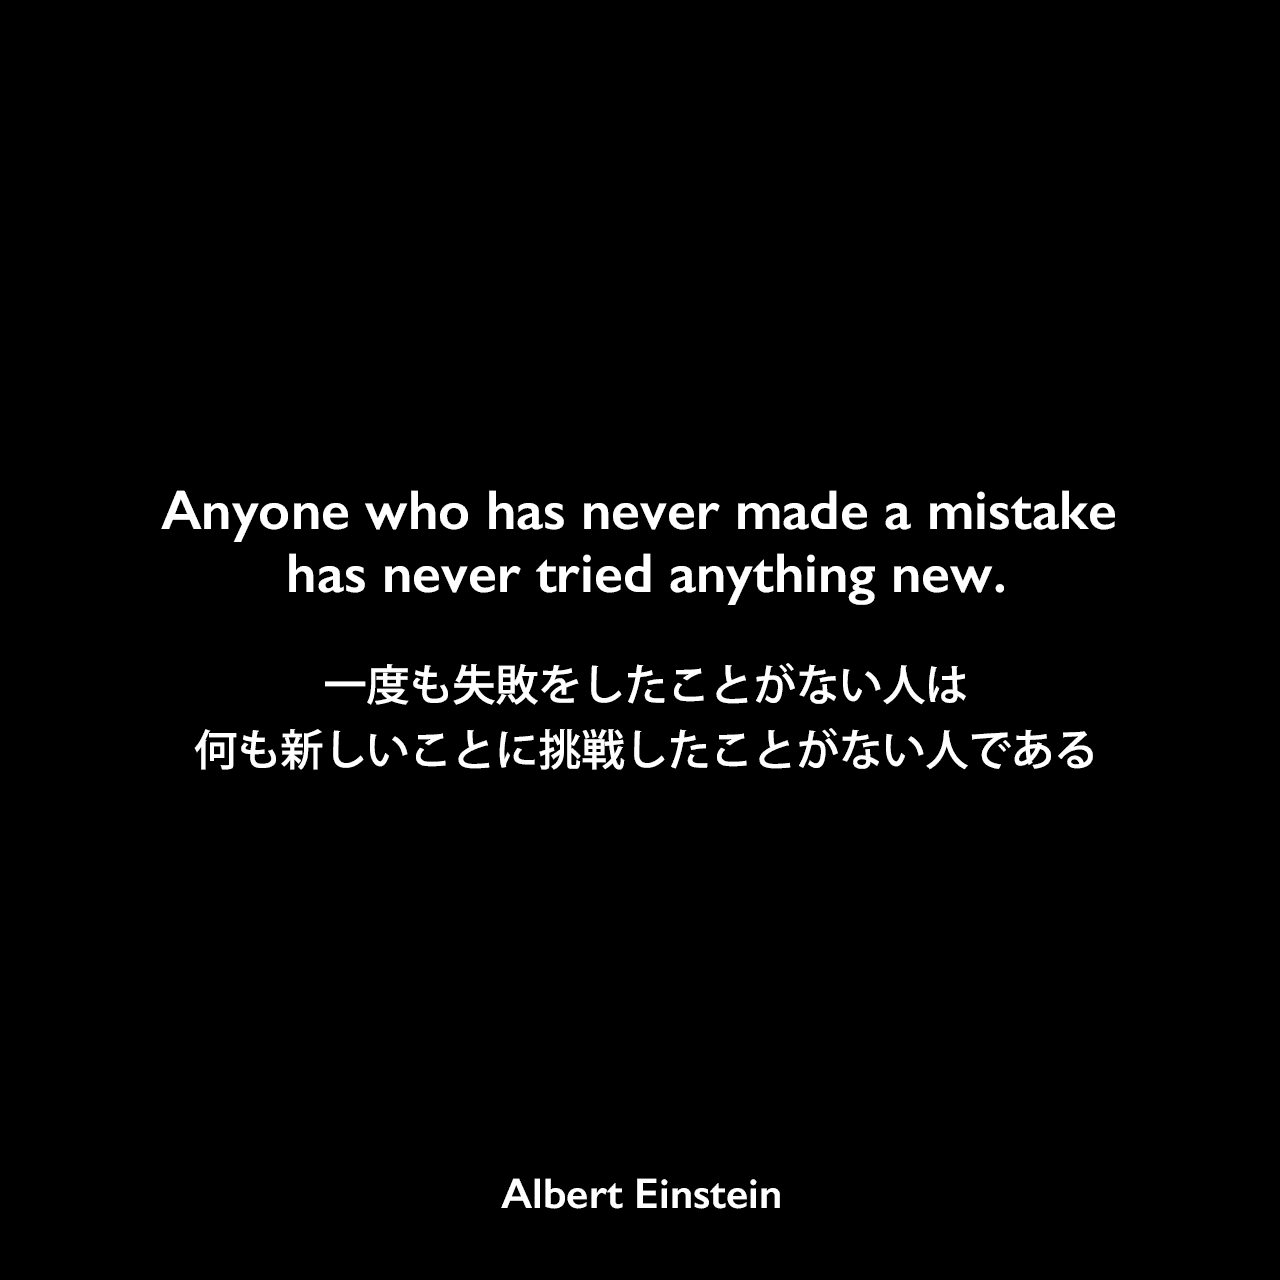 Anyone who has never made a mistake has never tried anything new.一度も失敗をしたことがない人は、何も新しいことに挑戦したことがない人である。Albert Einstein